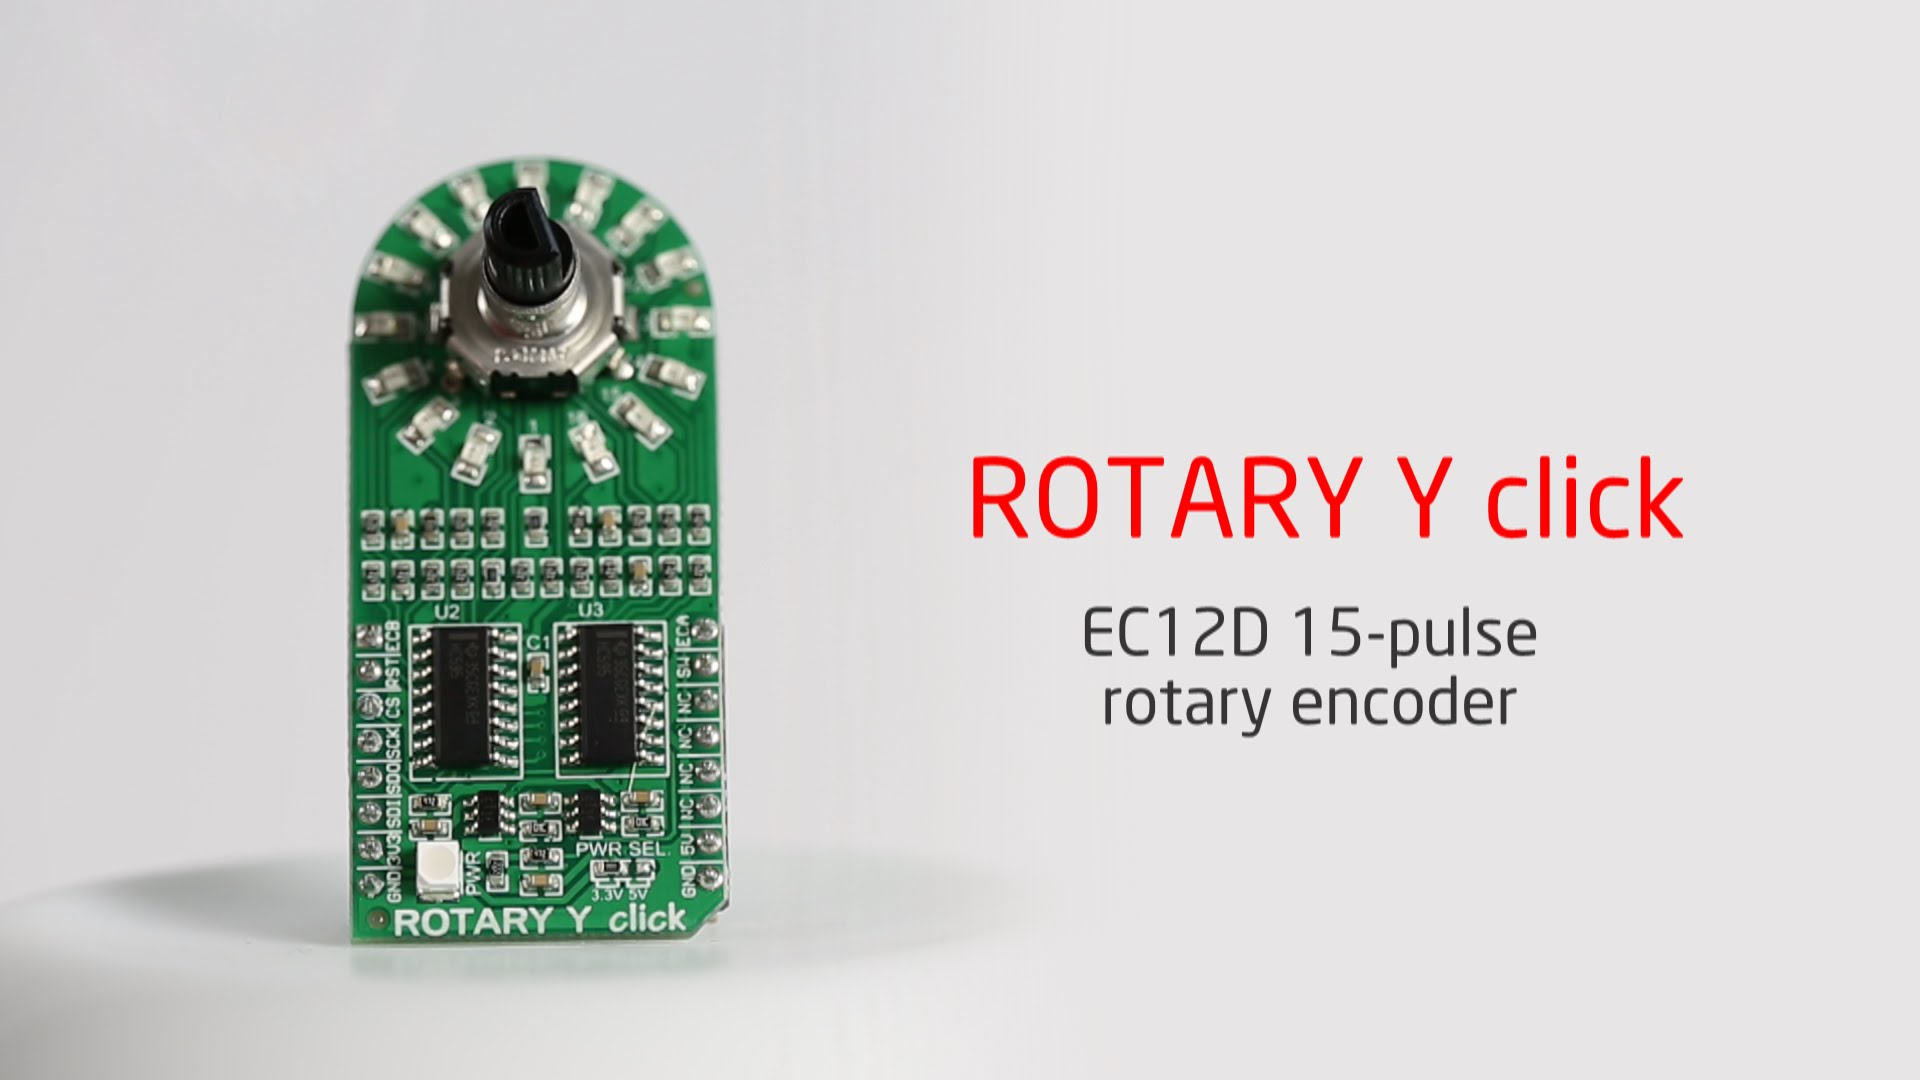 Rotary Y click released